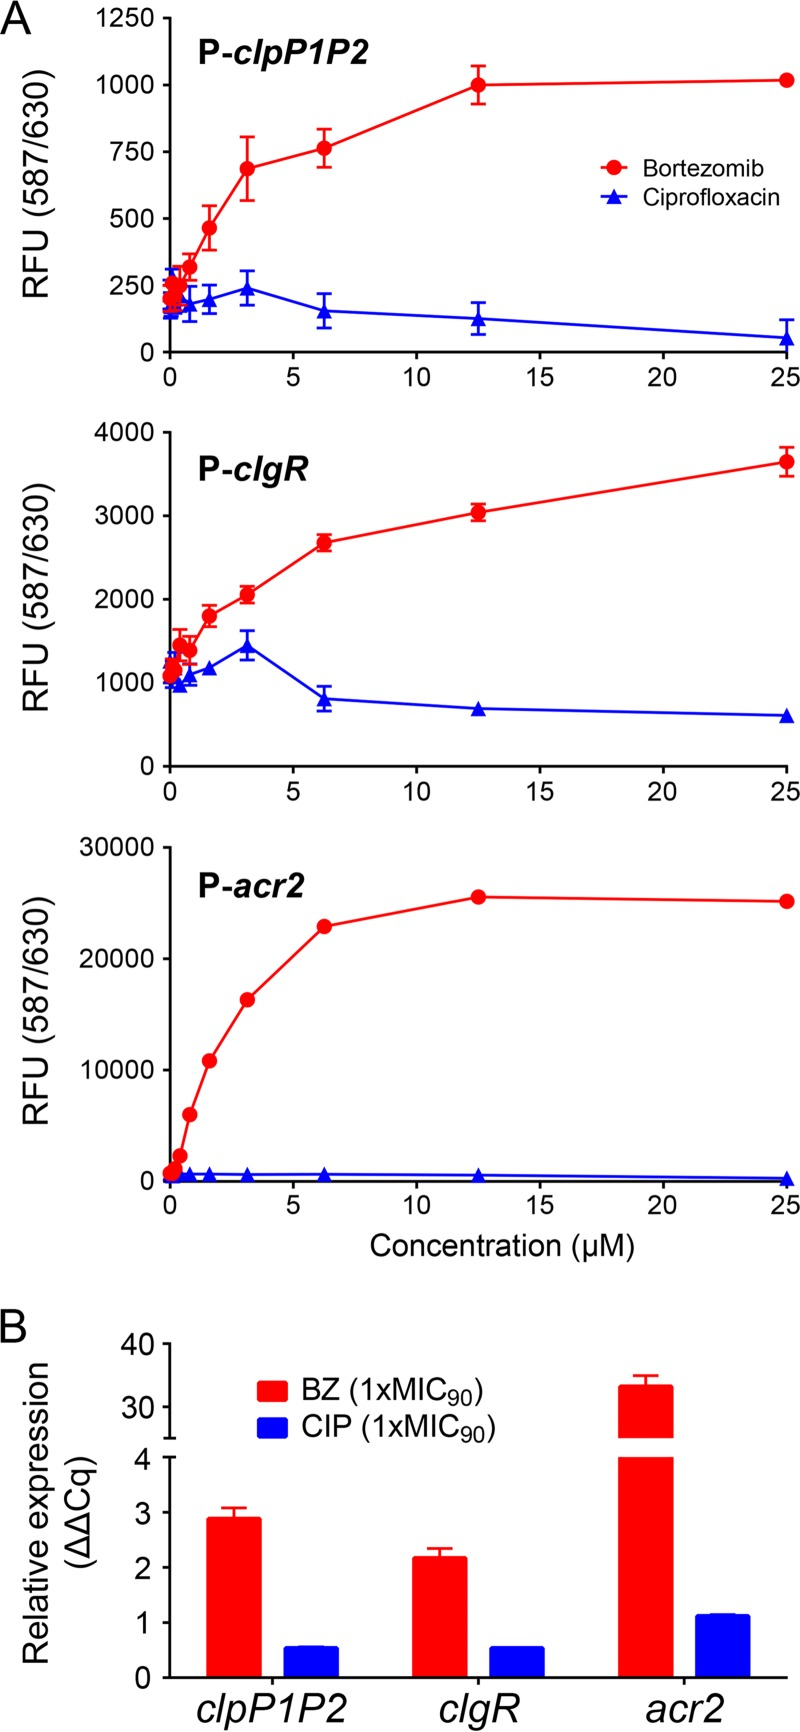 Bortezomib treatment increases transcription of clpP1P2 , clgR , and acr2 genes in M. bovis BCG. (A) Bortezomib dose-dependent increase of RFP expression under the control of P- clpP1P2 , P- clgR , and P- acr2 promoters after 24 h of bortezomib treatment. RFU, relative fluorescence units. Primers and plasmid construction procedures using the integrative plasmid pMV306 ( 18 ) to generate the respective reporter strains are listed in Table S1 in the supplemental material. OD 600 was measured during the course of the experiment and was found to increase a maximum of 2-fold in the drug-free samples and less in the drug-containing samples. (B) Bortezomib-dependent increase of clpP1P2 , clgR , and acr2 mRNA. Transcript levels were measured after 16 h of bortezomib treatment. Primer sequences ( 16 , 19 ) can be found in Table S2 in the supplemental material. Relative expression (quantification cycle [ΔΔ C q ]) was calculated as described previously ( 20 ) by using 16S RNA as the reference. BZ, bortezomib. CIP, ciprofloxacin. MIC 90 , drug concentration that inhibited growth of the bacteria by 90%. MIC 90 of BZ, 12.5 µM. MIC 90 of CIP, 1.6 µM. Data in panels A and B are represented as means ± standard deviations from two biological and four technical replicates.